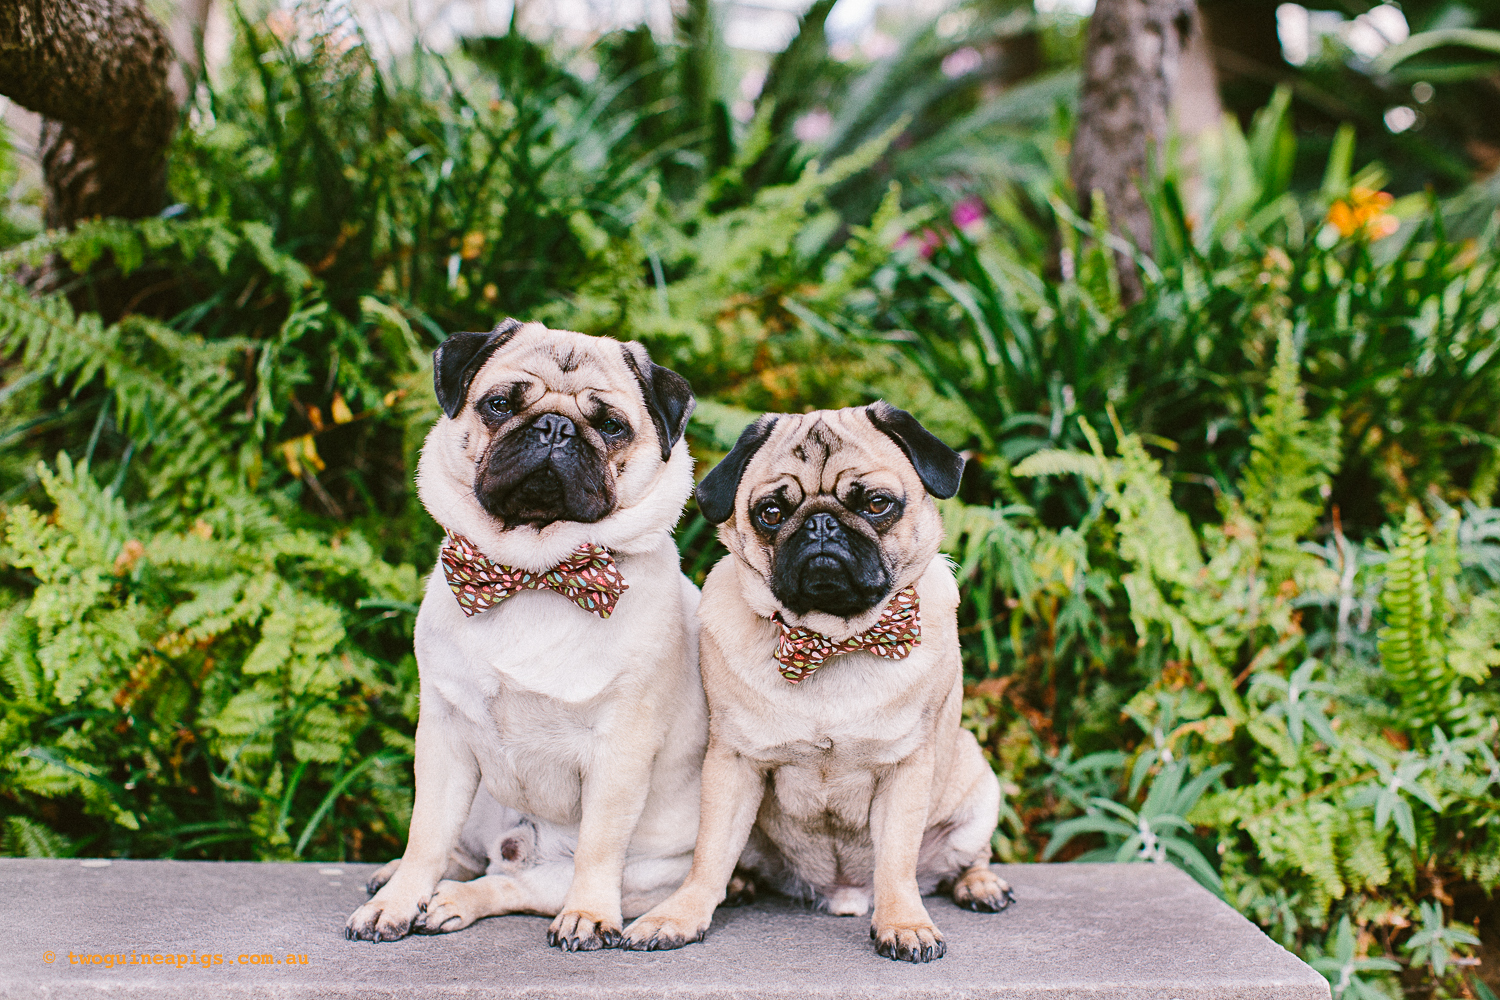 twoguineapigs_pet_photography_oh_jaffa_picnic_pugs_rodger_1500-38.jpg